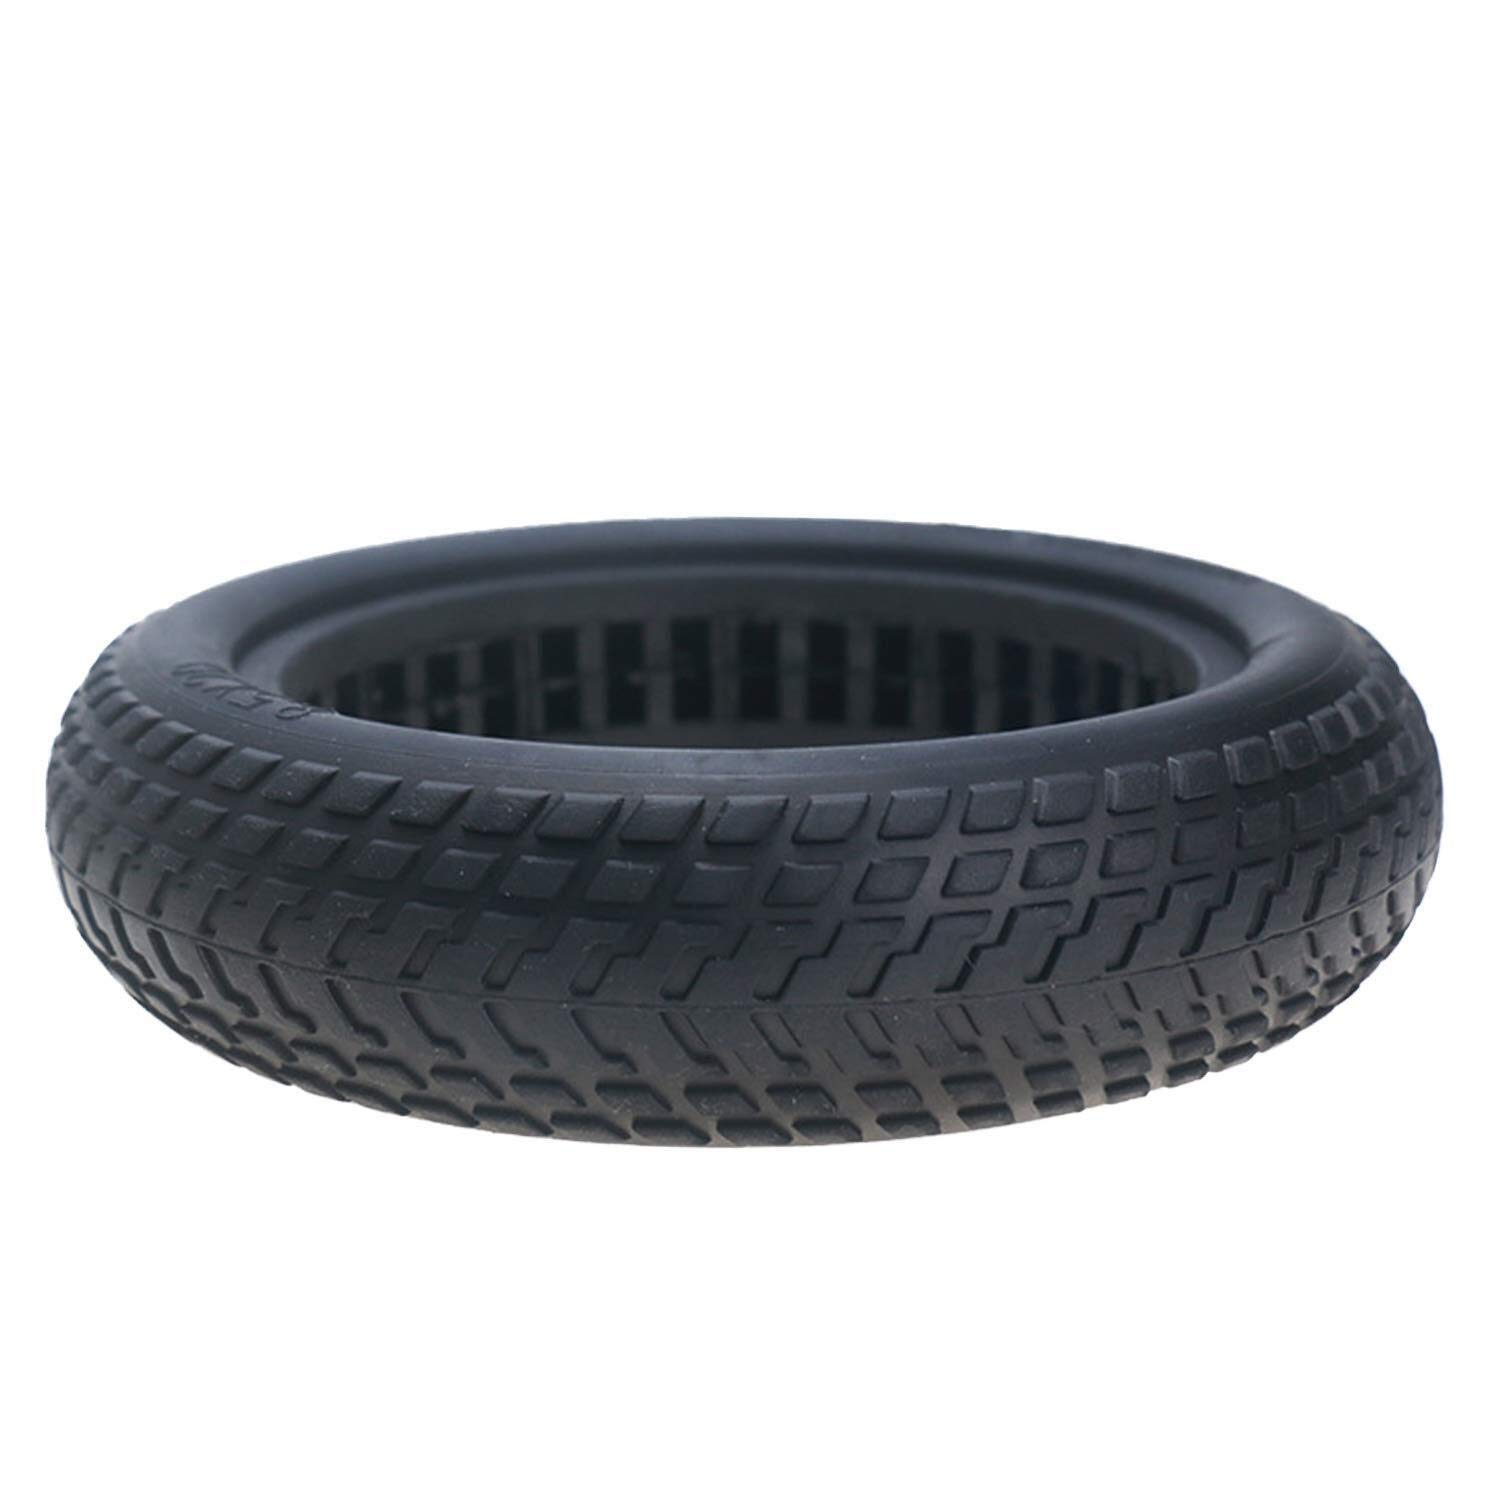 Trailer skateboard tire 8.5inch Shock-absorption Hollow Semi-Solid Anti-slip Rubber Wheel Tire Tyre Compatible with Xiaomi Xiao Mi Mijia M365 Electric Scooter Rubber tires for scooters trolleys